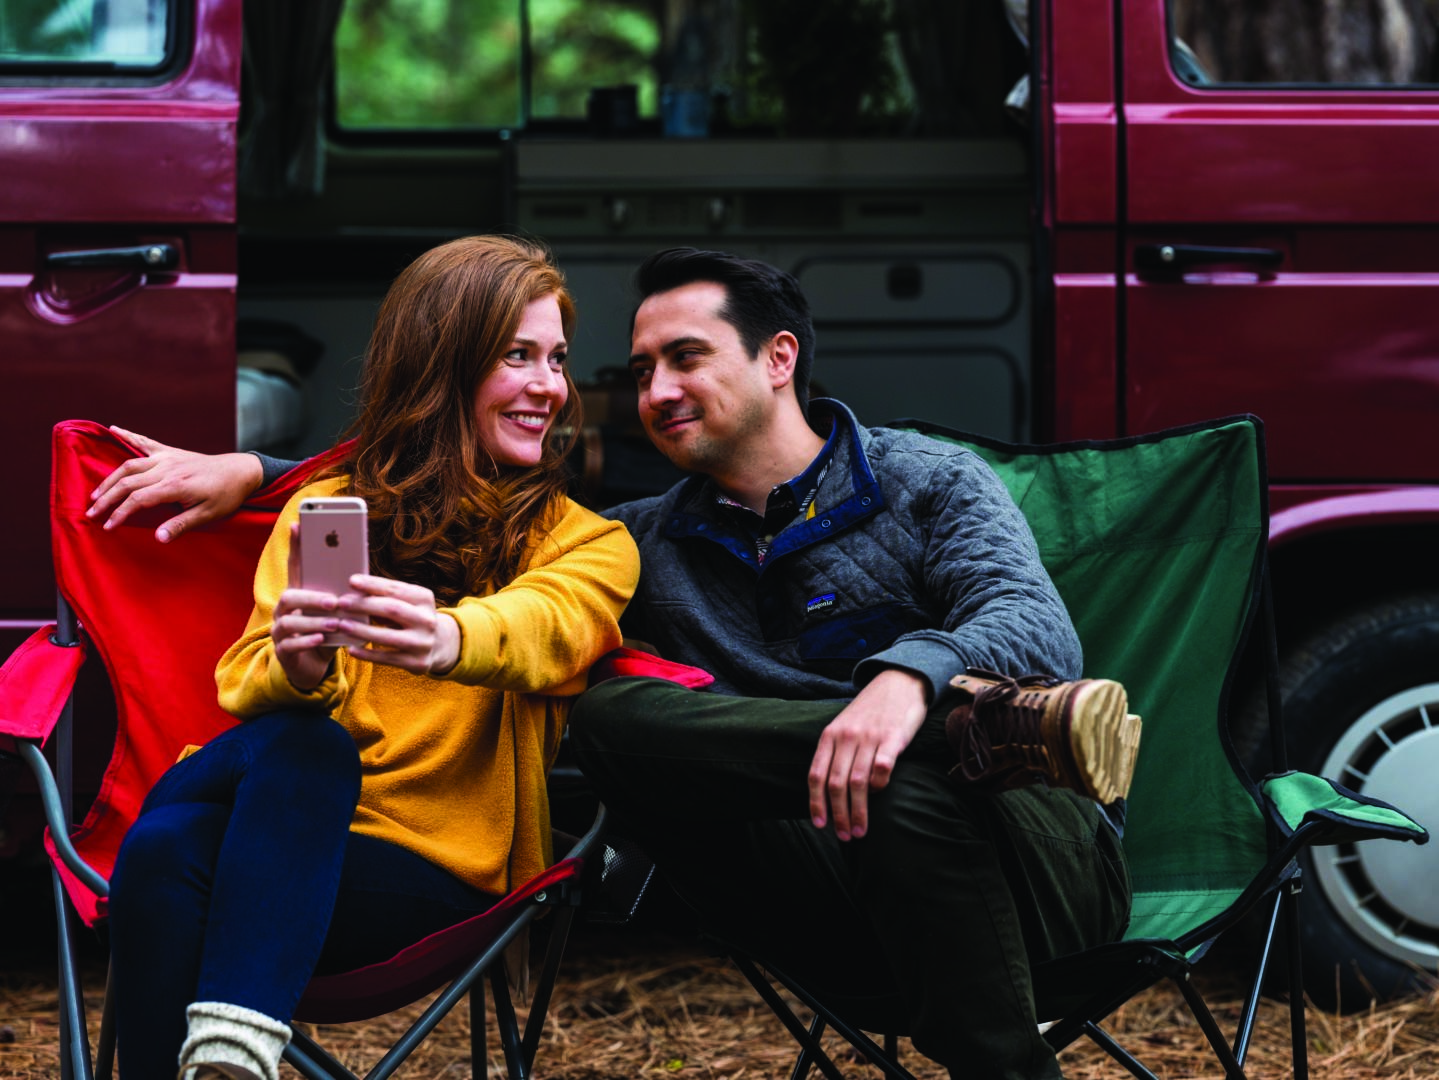 Image of a girl taking a selfie camping with a guy